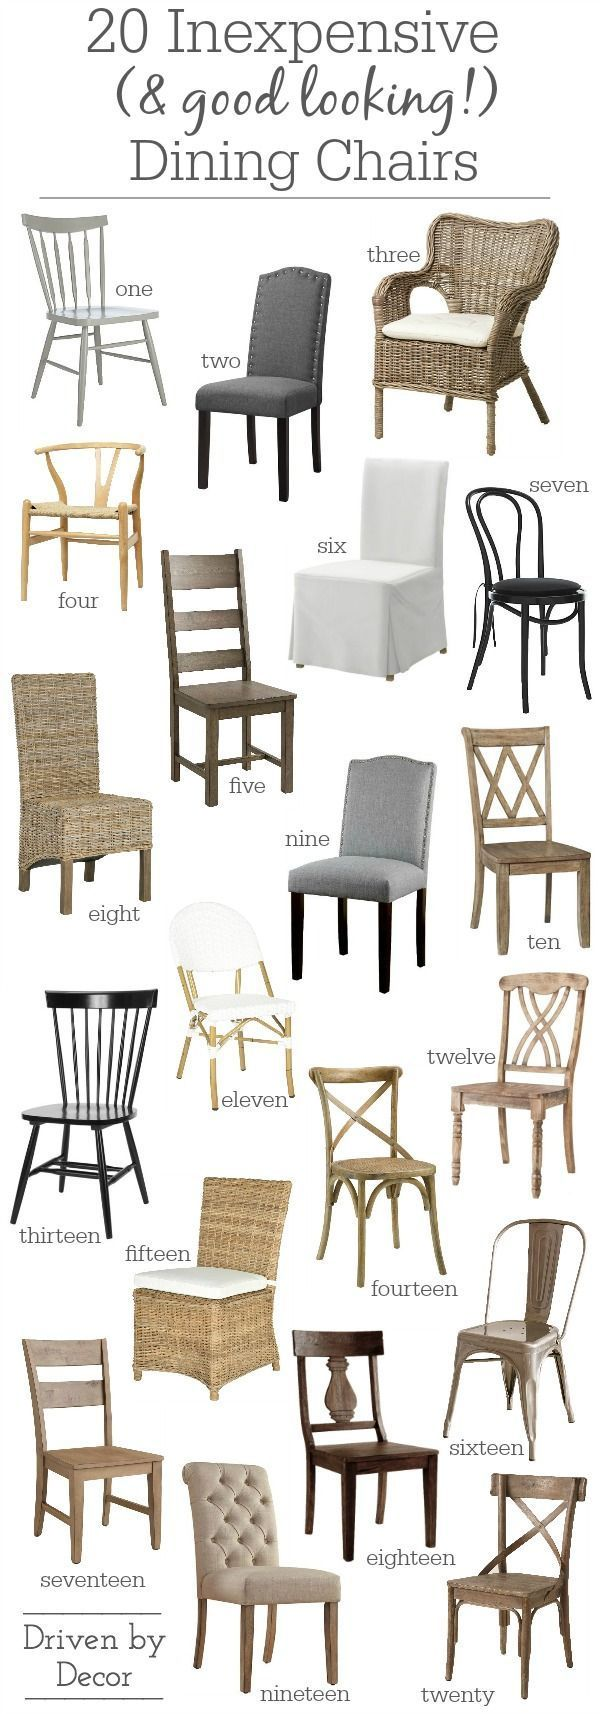 20 inexpensive dining chairs that donu0027t look cheap